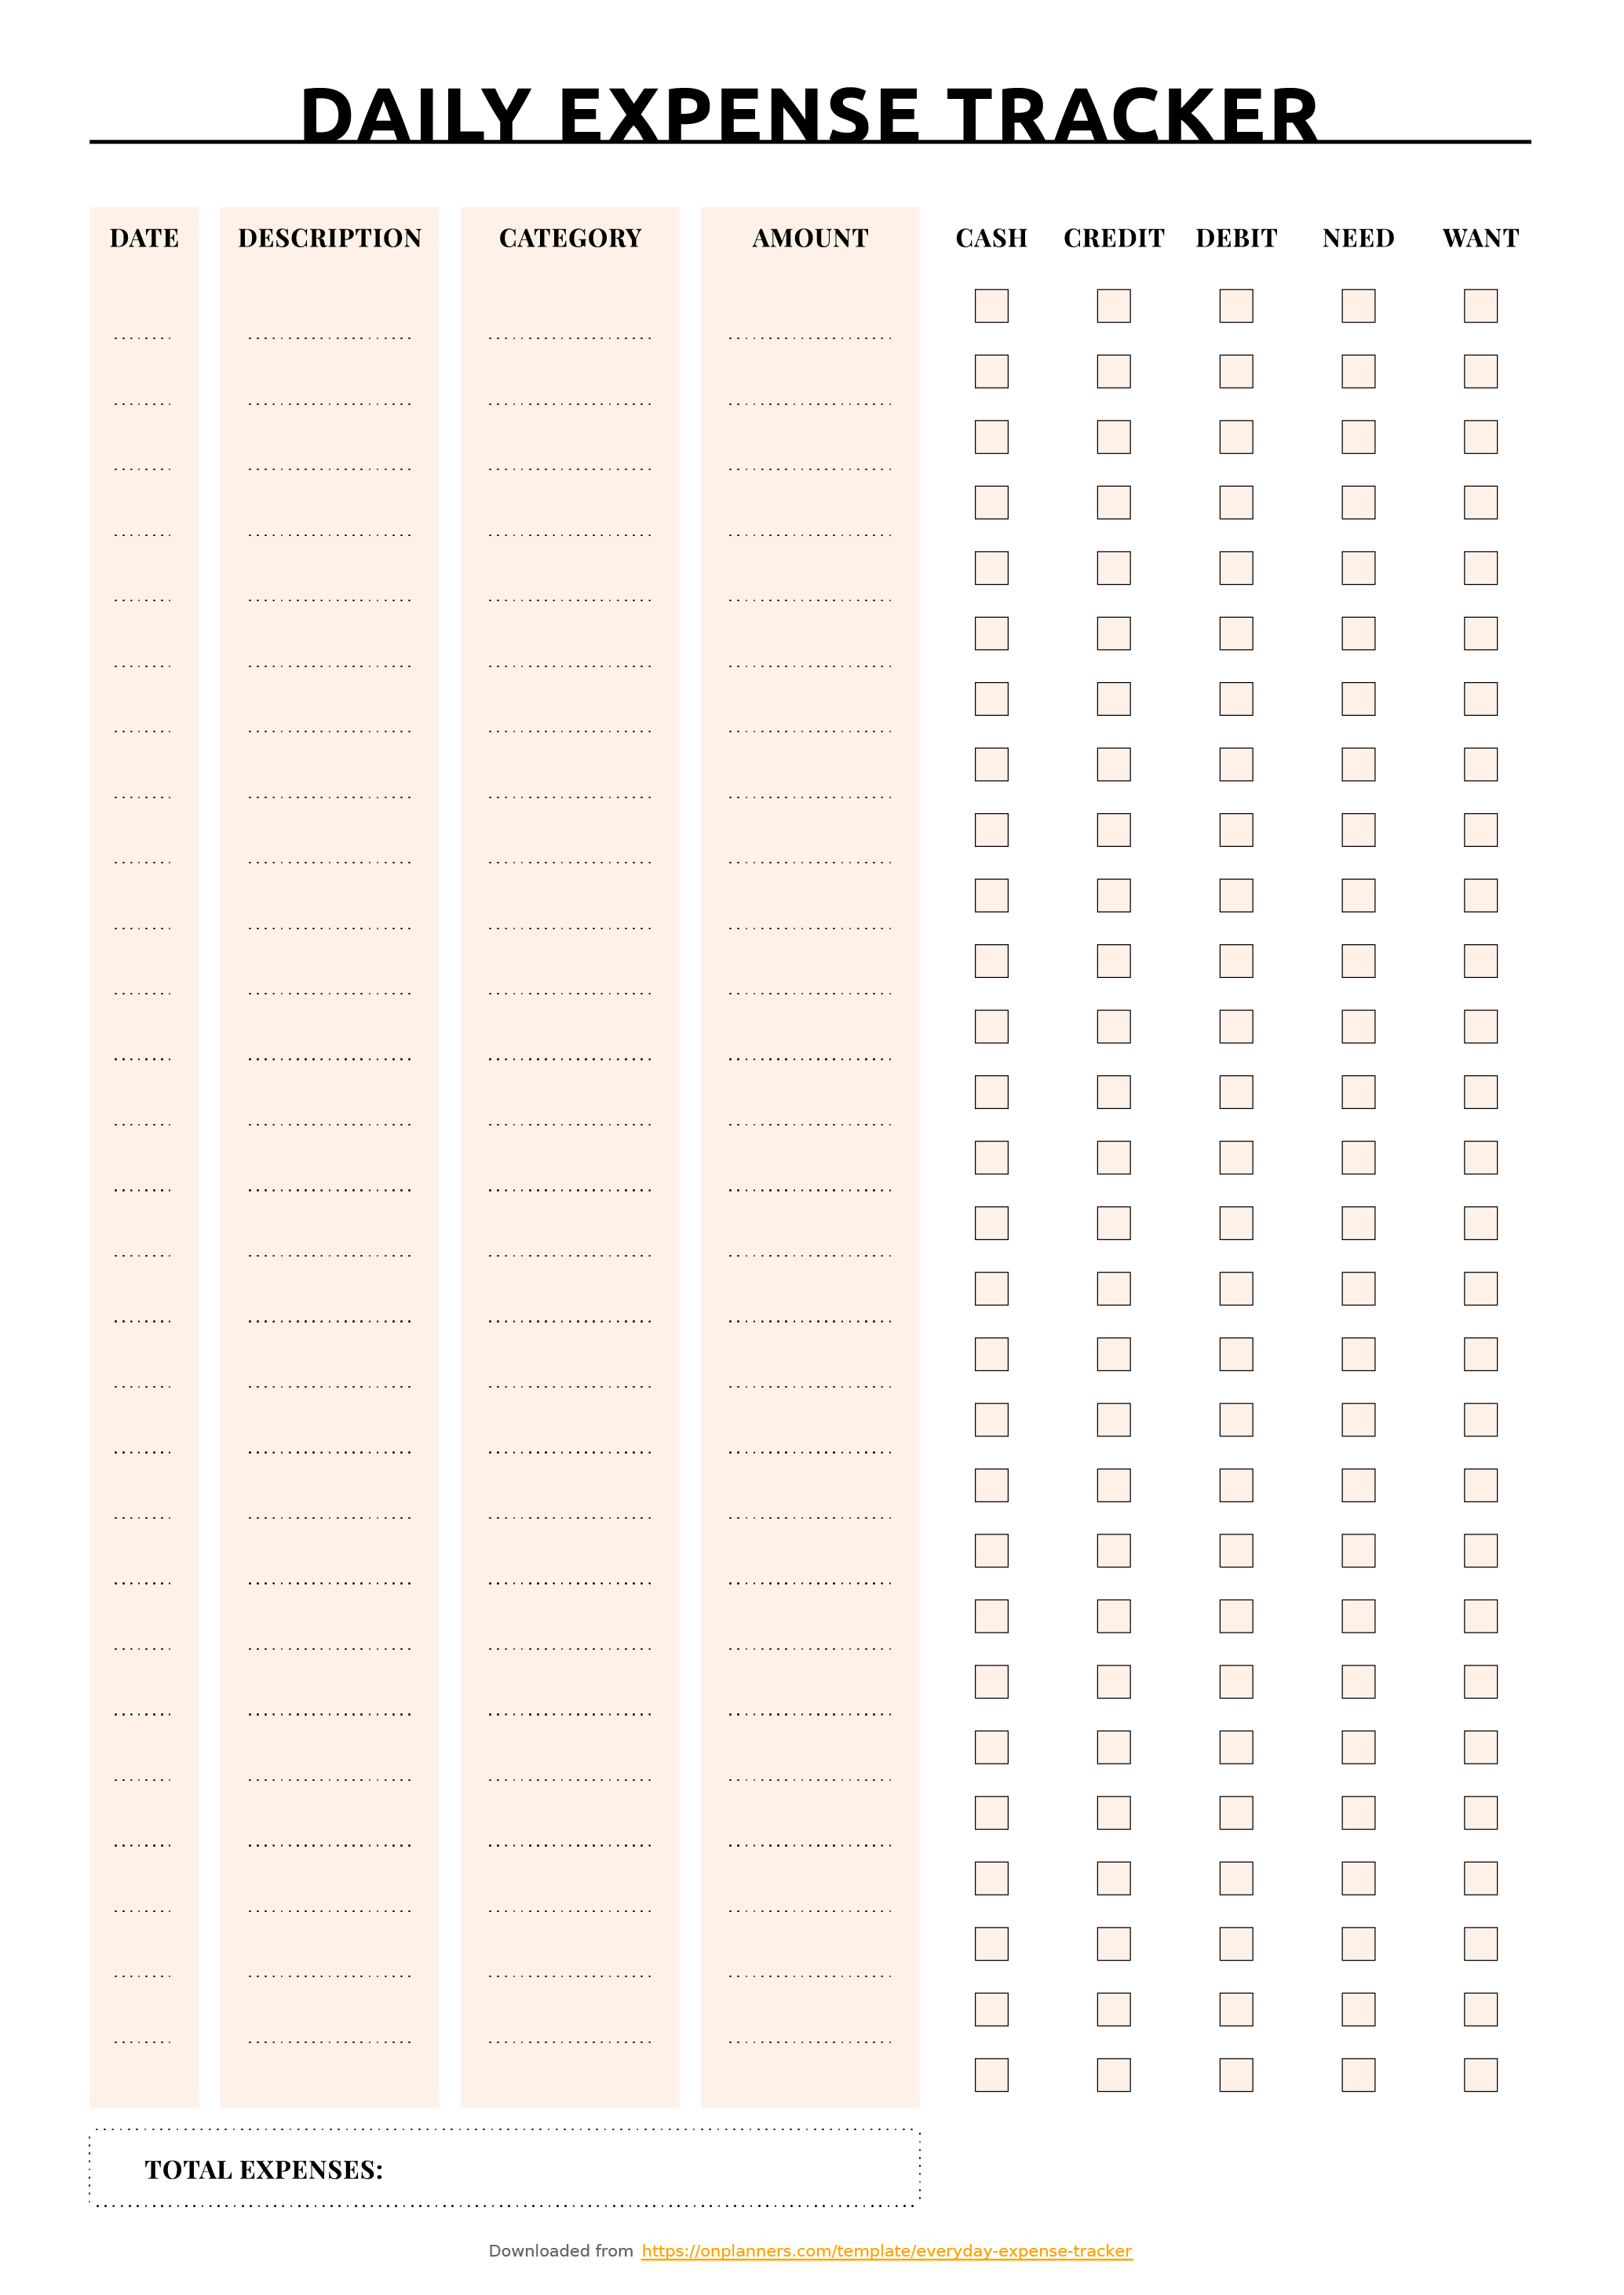 Free Printable Everyday Expense Tracker Pdf Download - Free Printable Daily Expense Tracker